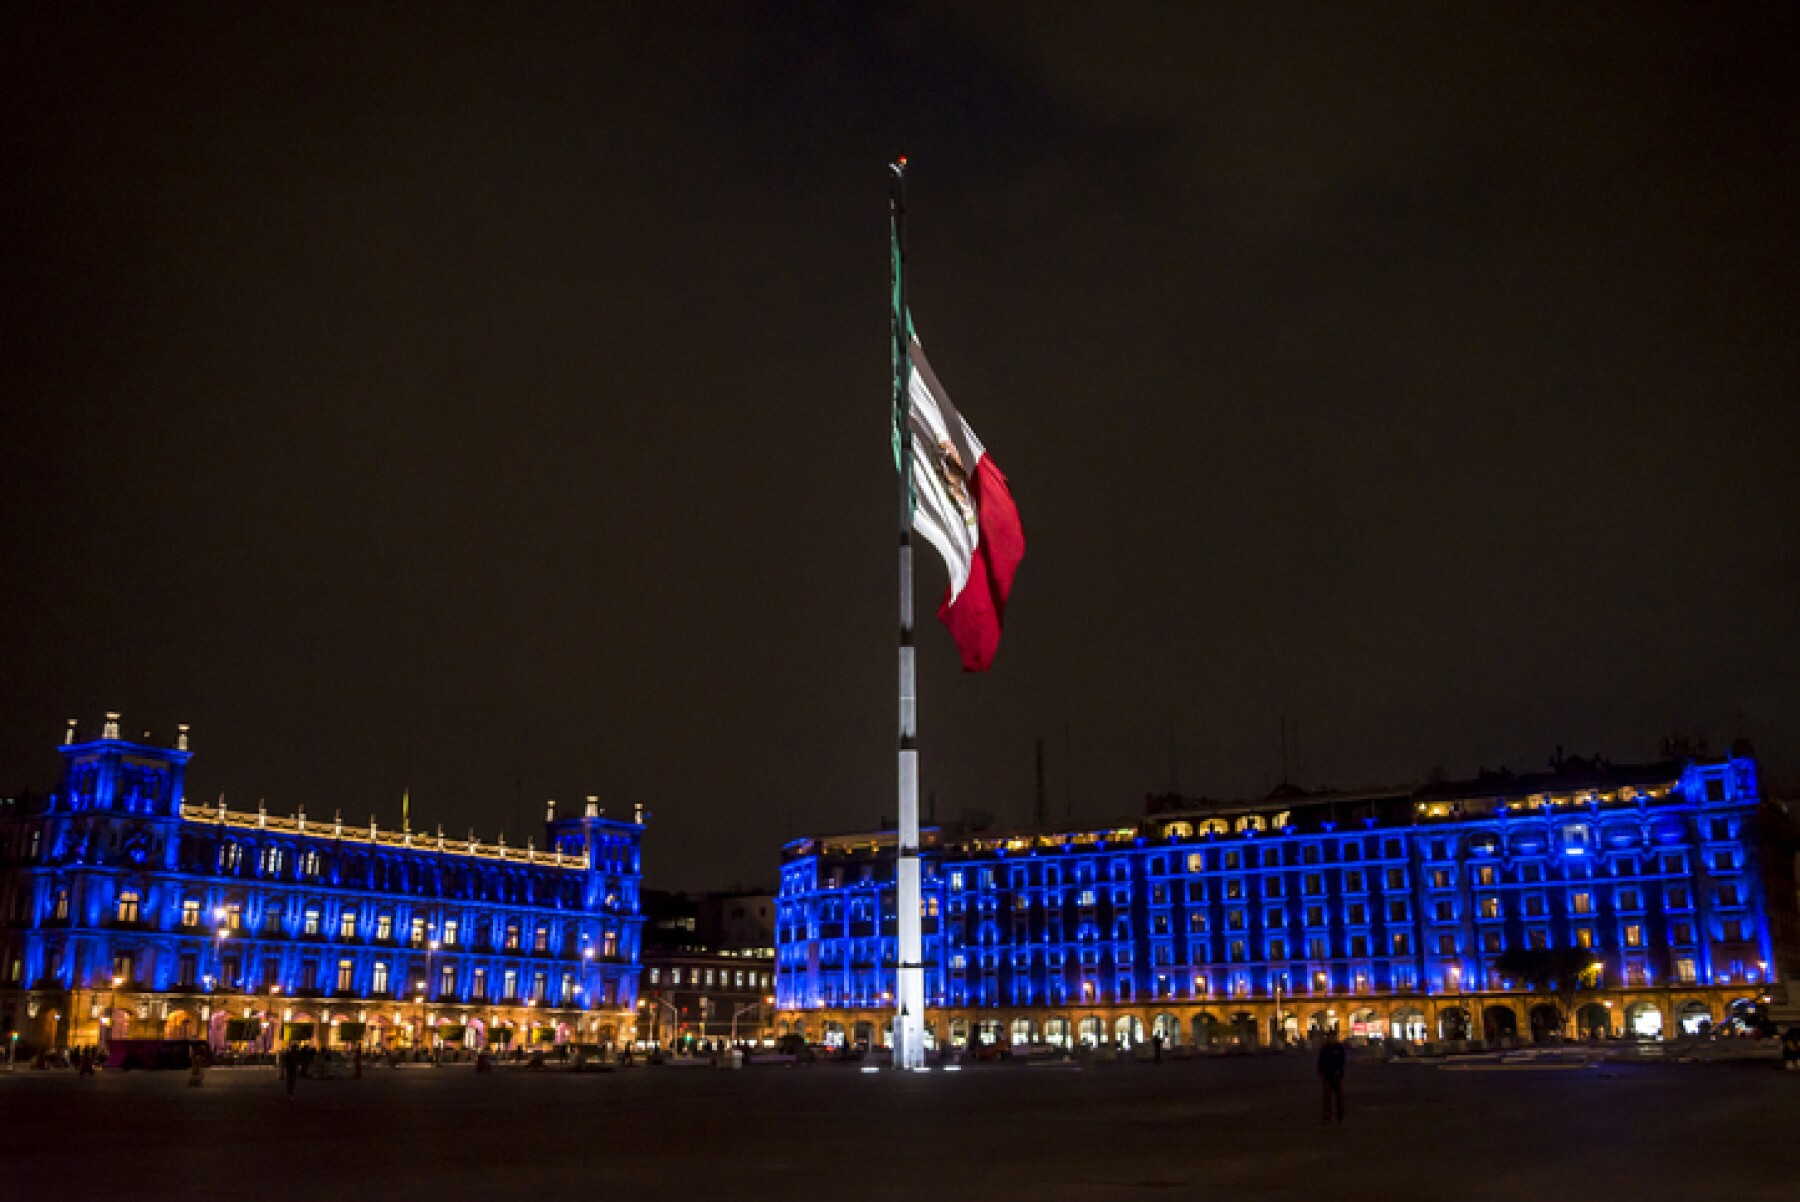 Huge Mexican flag on flagpole at the Mexico City's main square or Zócalo, officially known as the Plaza de la Constitución or Constitution square at night, Mexico City, Mexico